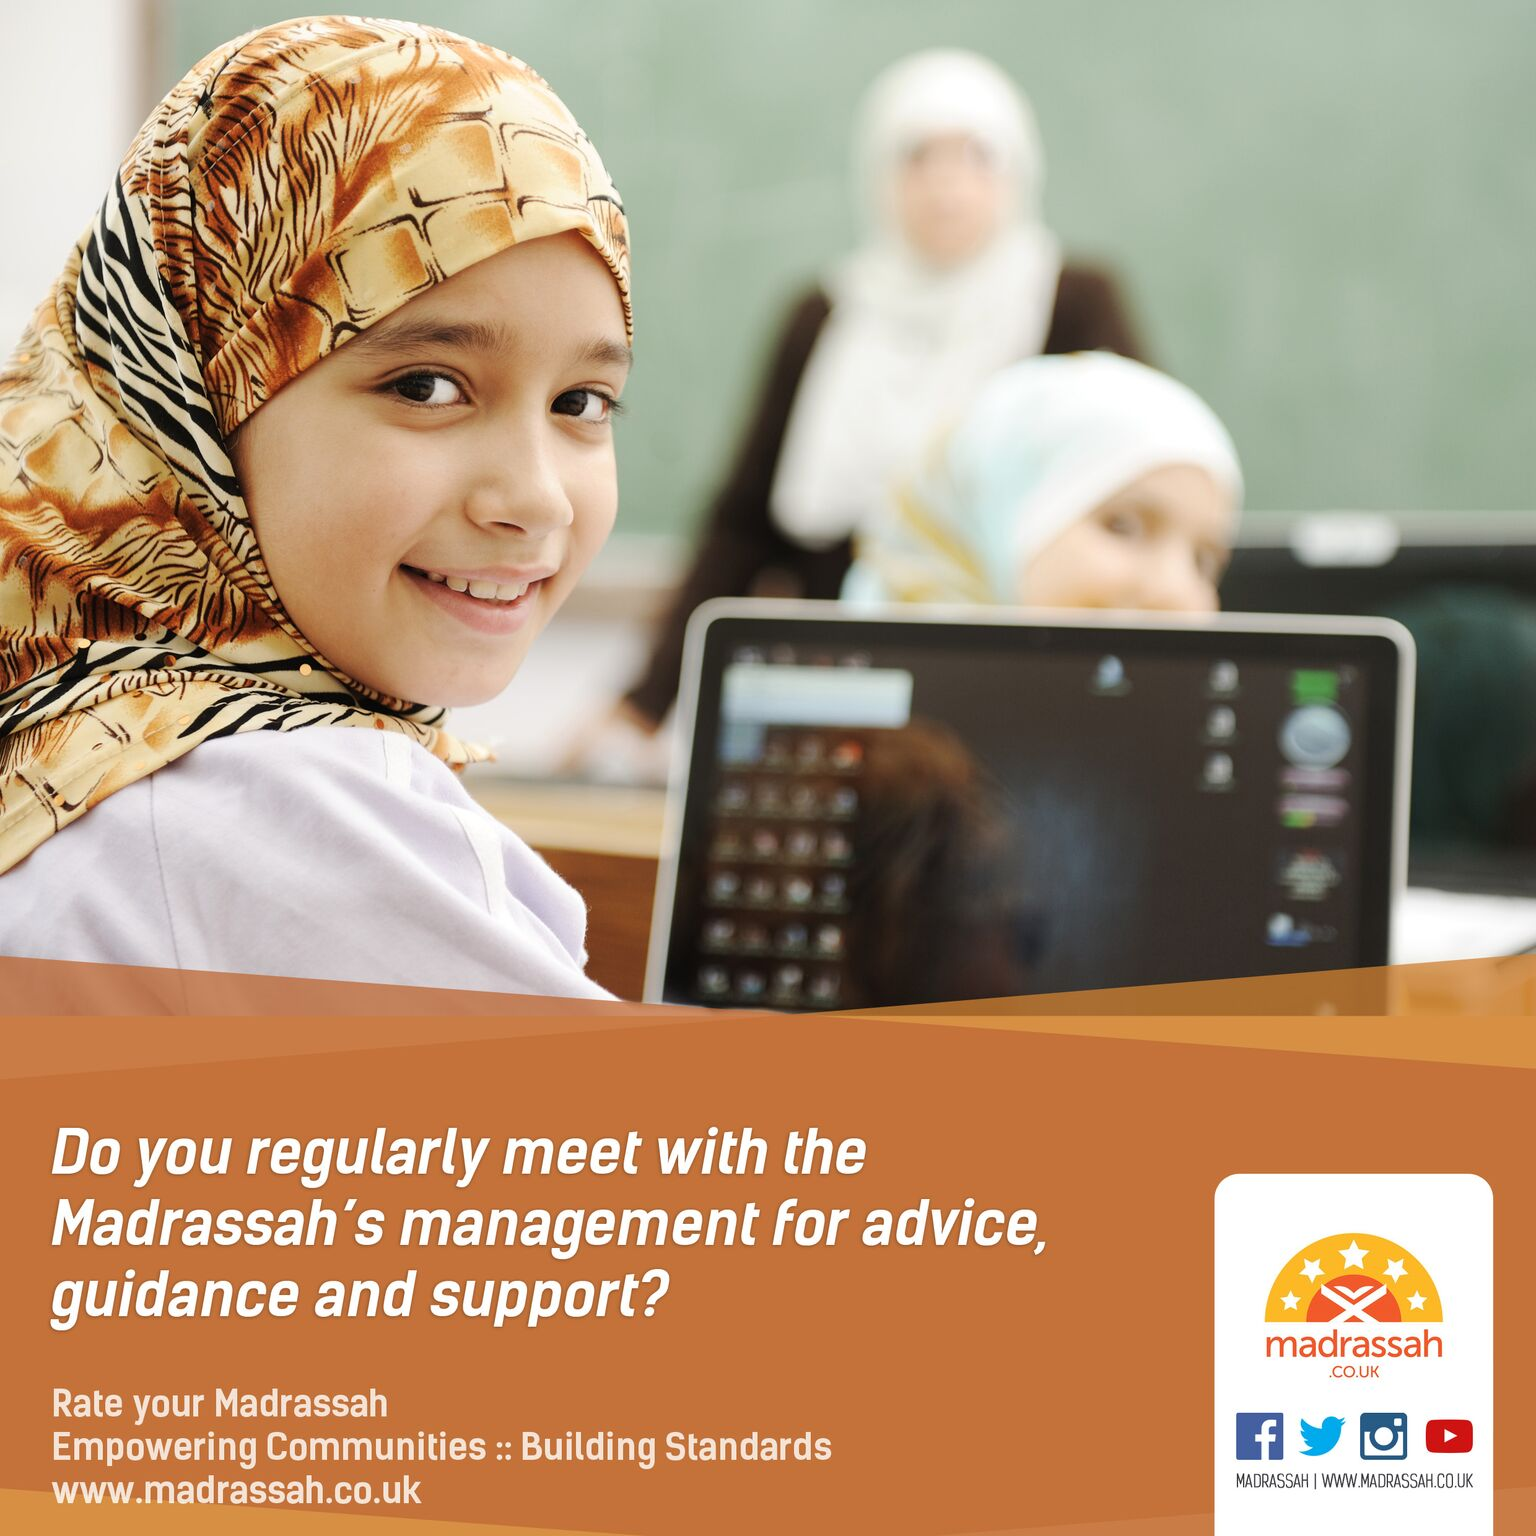 Do you regularly meet with Madrassah Management for advice, guidance and support